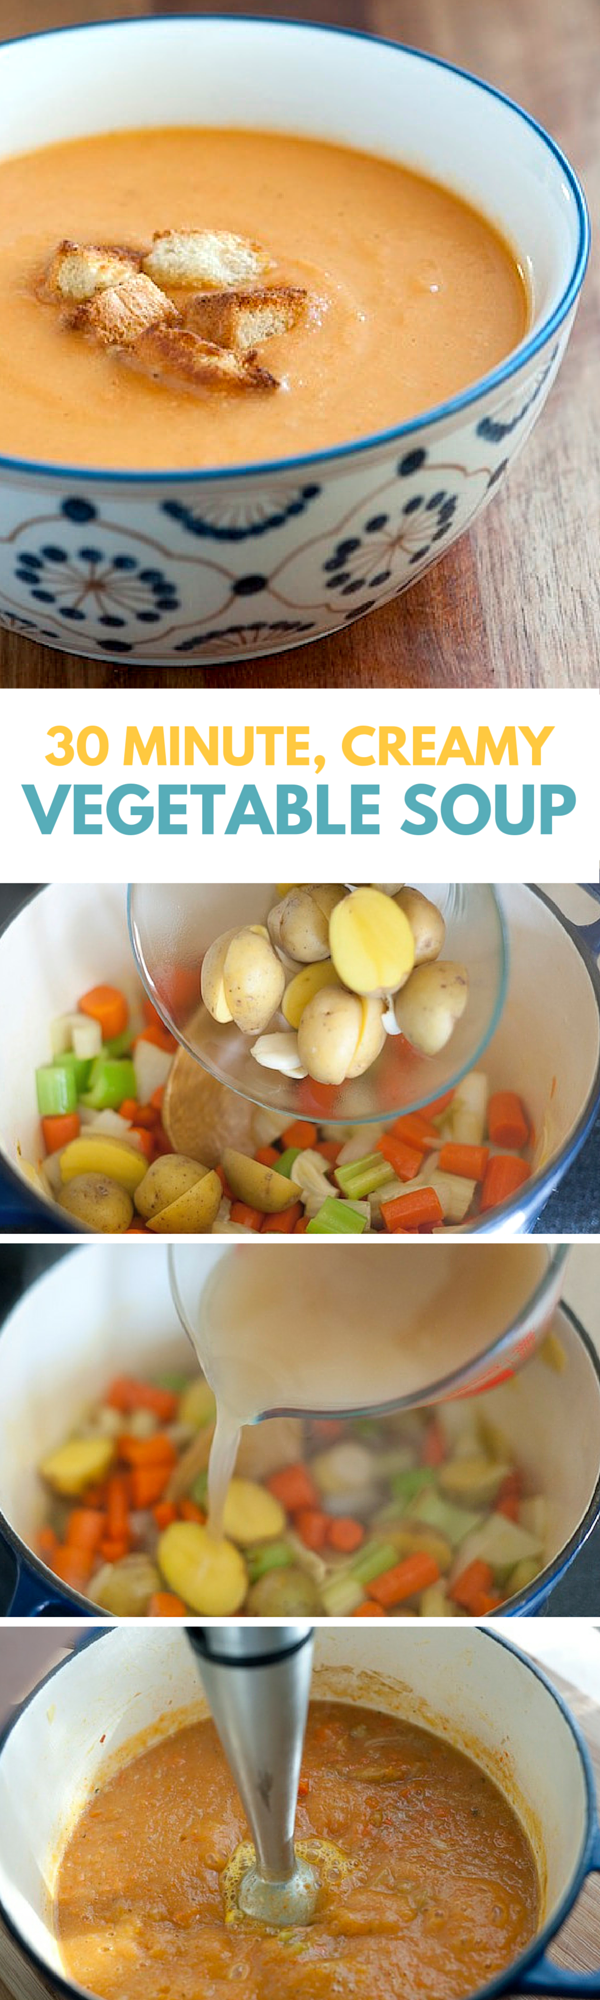 Quick and Easy Creamy Vegetable Soup You only need 30 Minutes to make the easy and delicious Vegetable Soup!